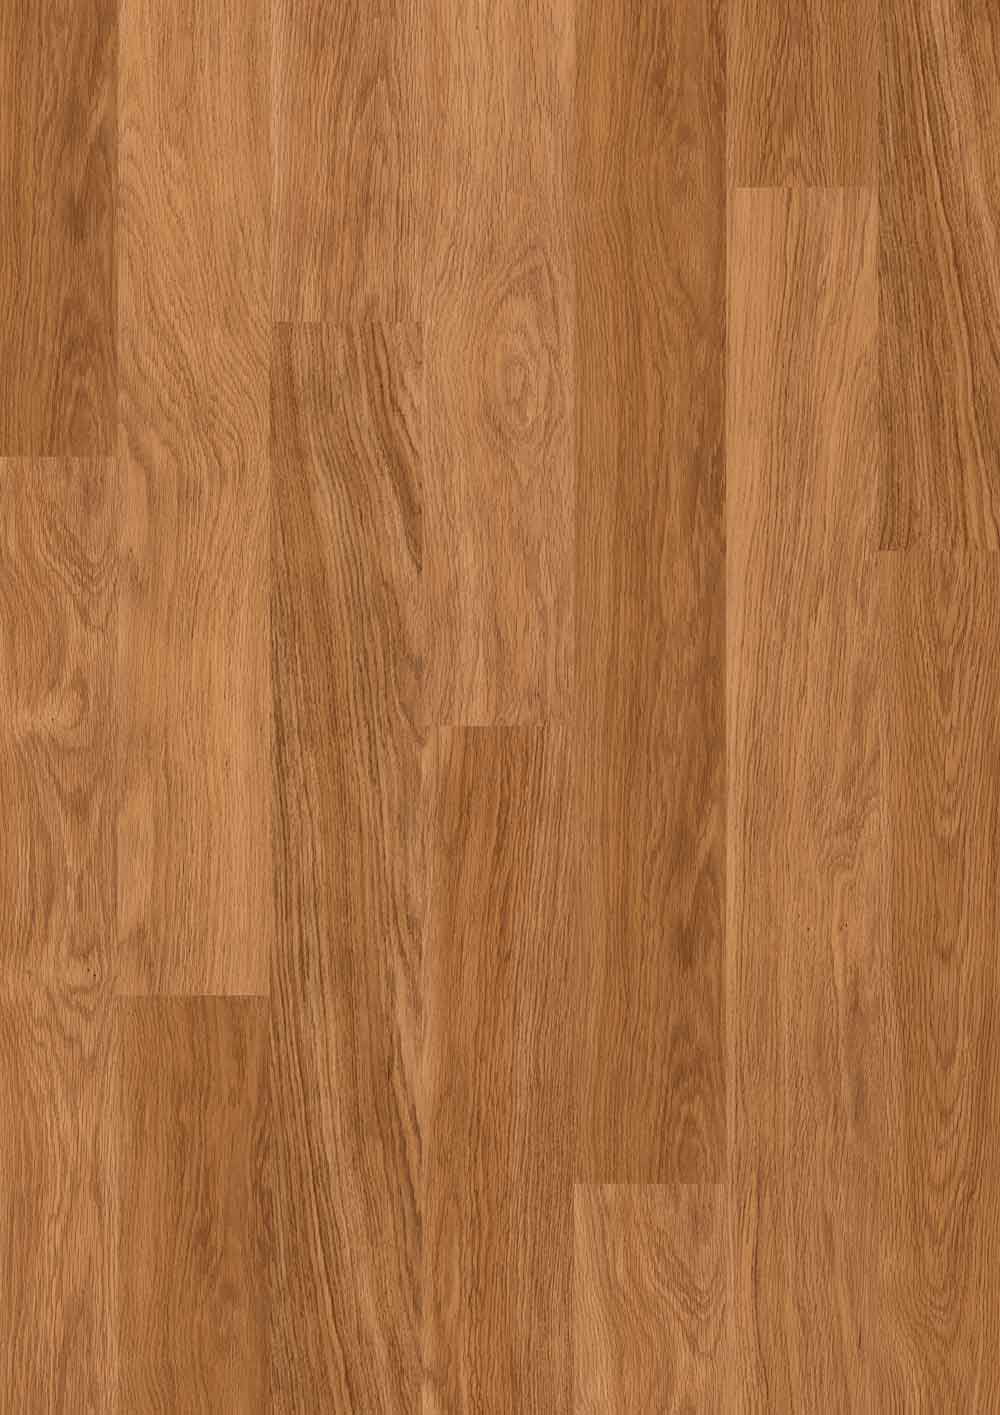 quick step laminate perspective dark varnished oak planks 4. Black Bedroom Furniture Sets. Home Design Ideas